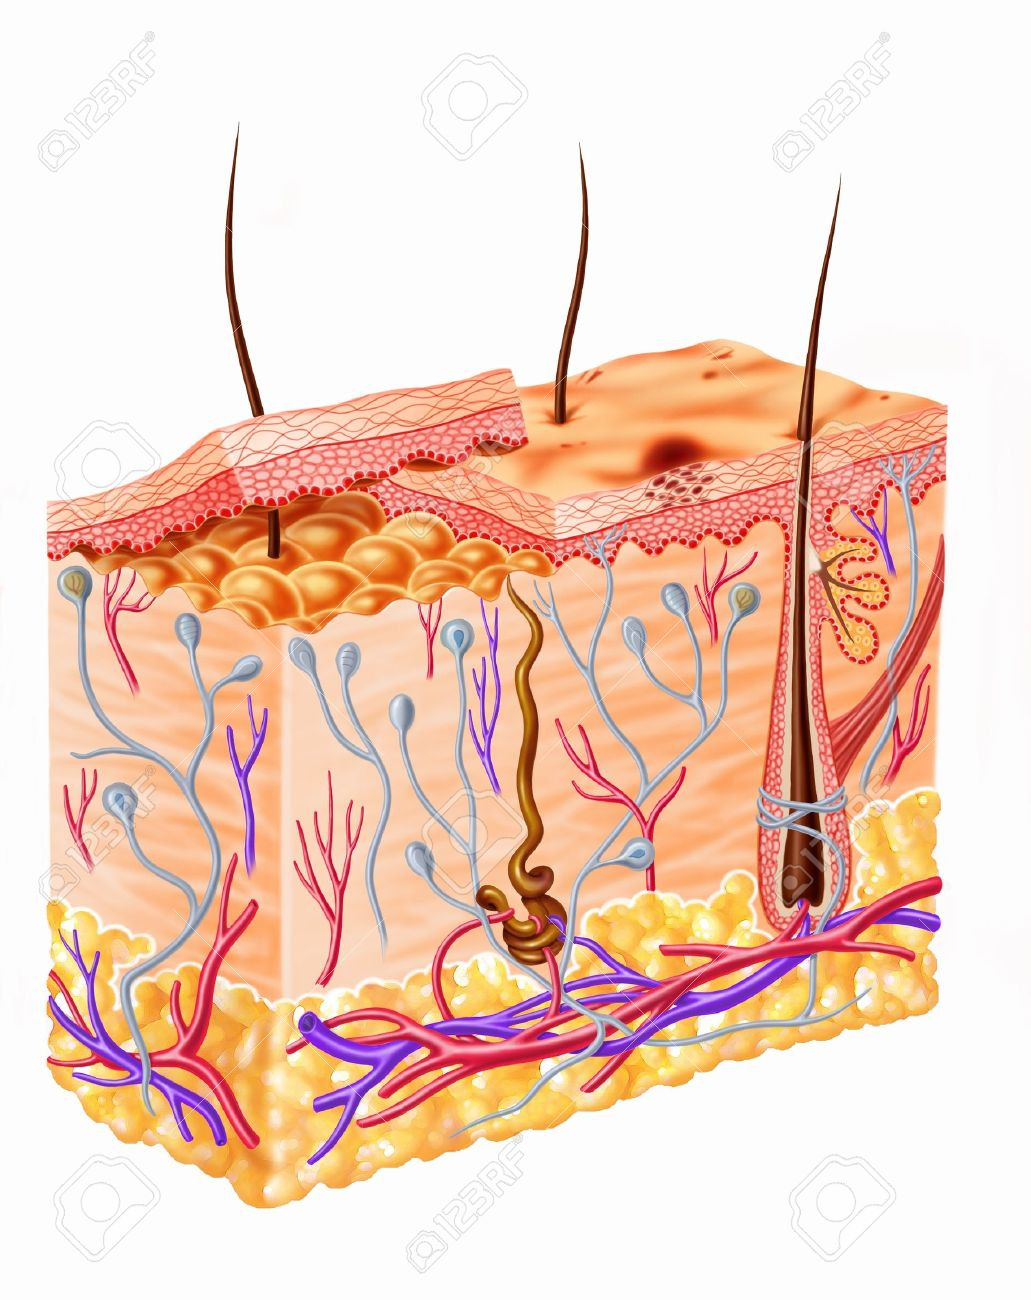 Human skin section diagram stock photo picture and royalty free human skin section diagram stock photo 11713034 pooptronica